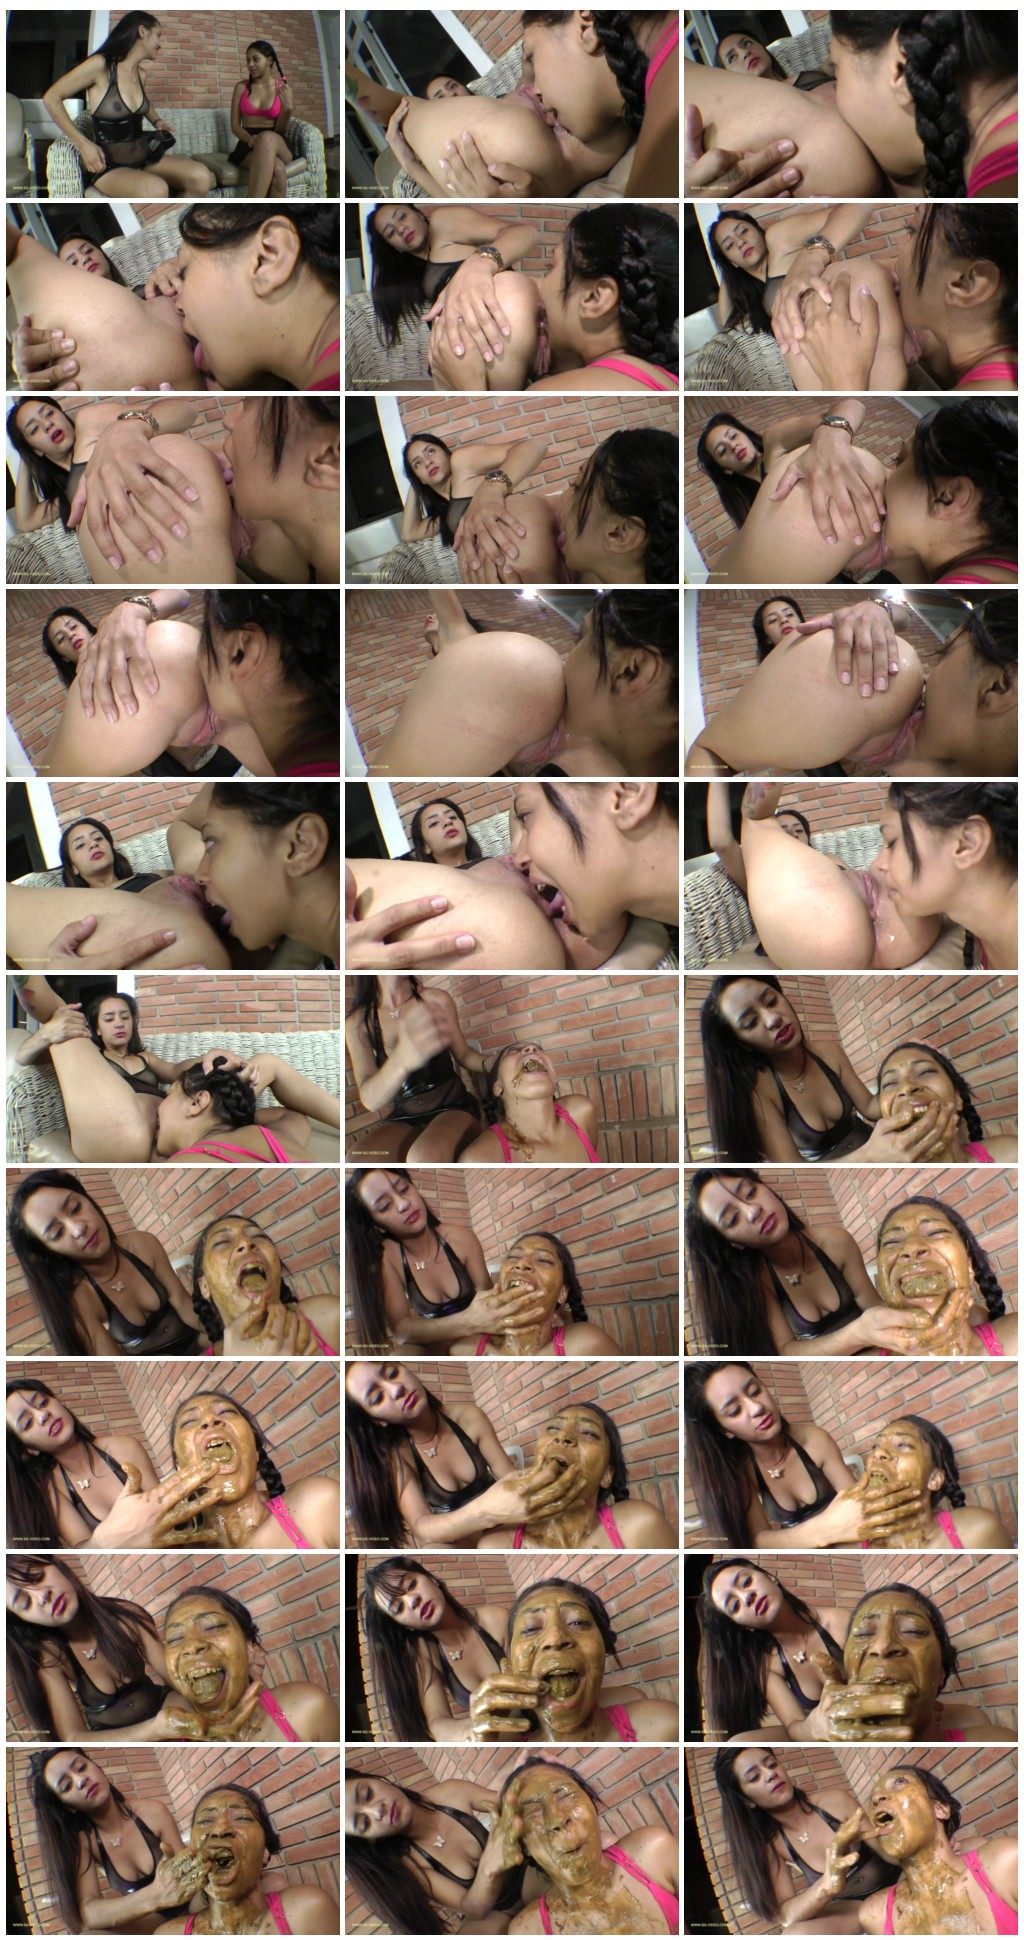 SG Video.com Scat Domination By Dominatrix Agatha Suck My Asshole And Take All My Big Shit Into Your Mouth Scat Scat Swallow Femdom Lesbian Human Toilet Fetish thumb - [SG-Video com] Scat Domination By Dominatrix Agatha - Suck My Asshole And Take All My Big Shit Into Your Mouth [ Scat, Scat Swallow, Femdom, Lesbian, Human Toilet, Fetish]